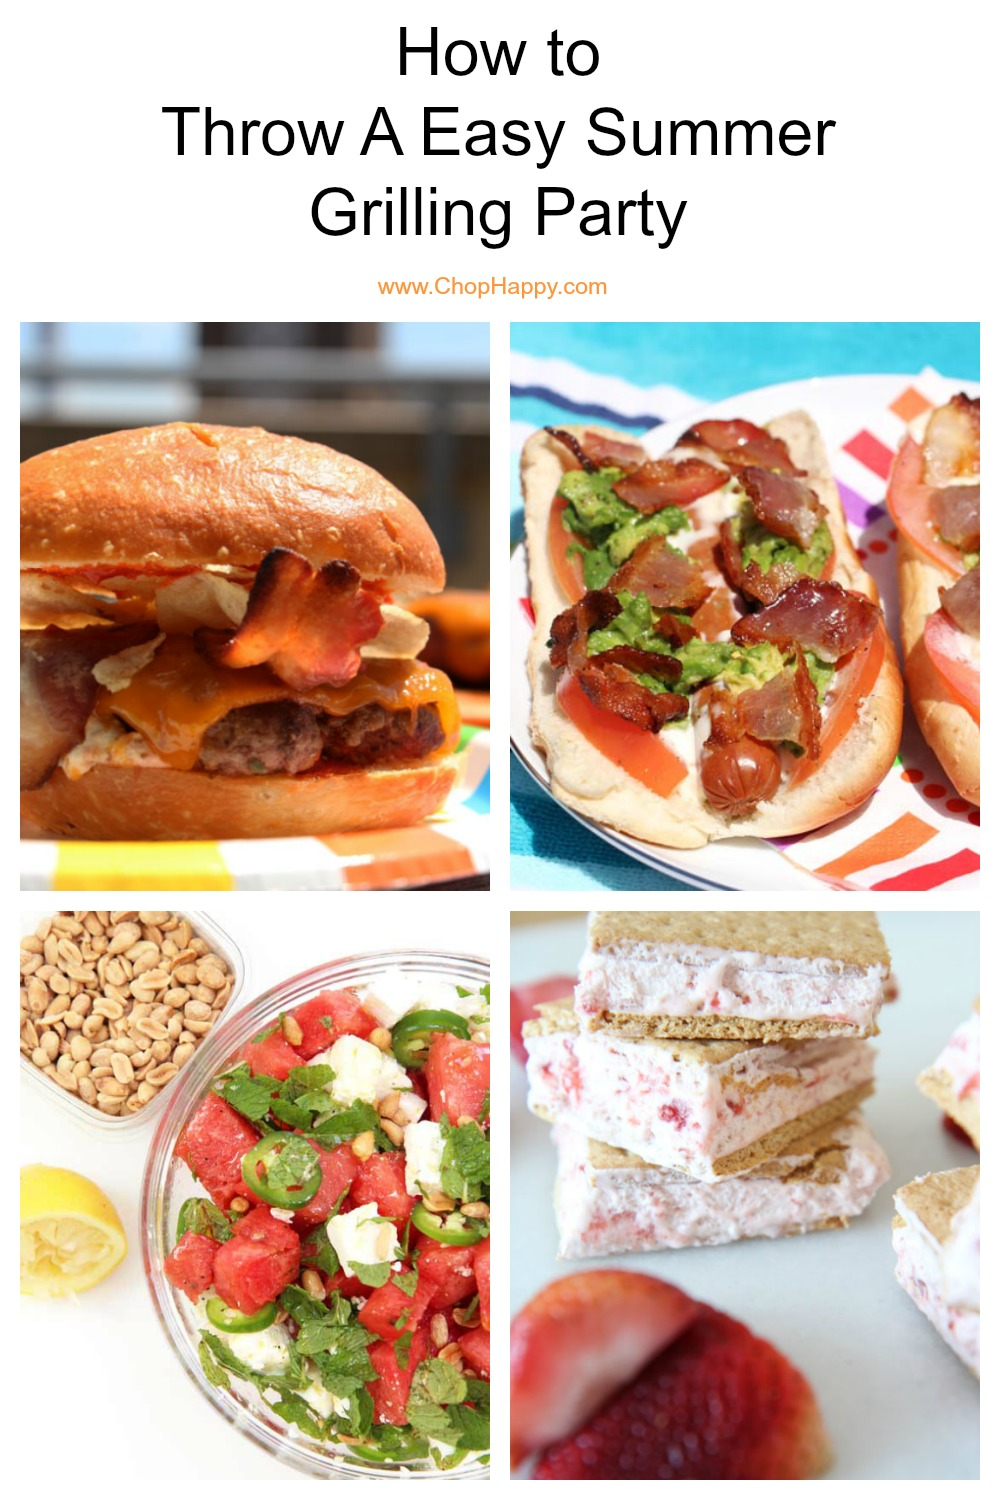 How to throw a easy summer party. Here is step by step guide to an easy backyard BBQ. The recipes include frozen mango drink, watermelon feta salad, avocado potato salad, jalapeno popper burgers, BLT hot dogs, and 3 ingredient ice cream. Happy Summer Eats! #summerrecipes #grillingrecipes